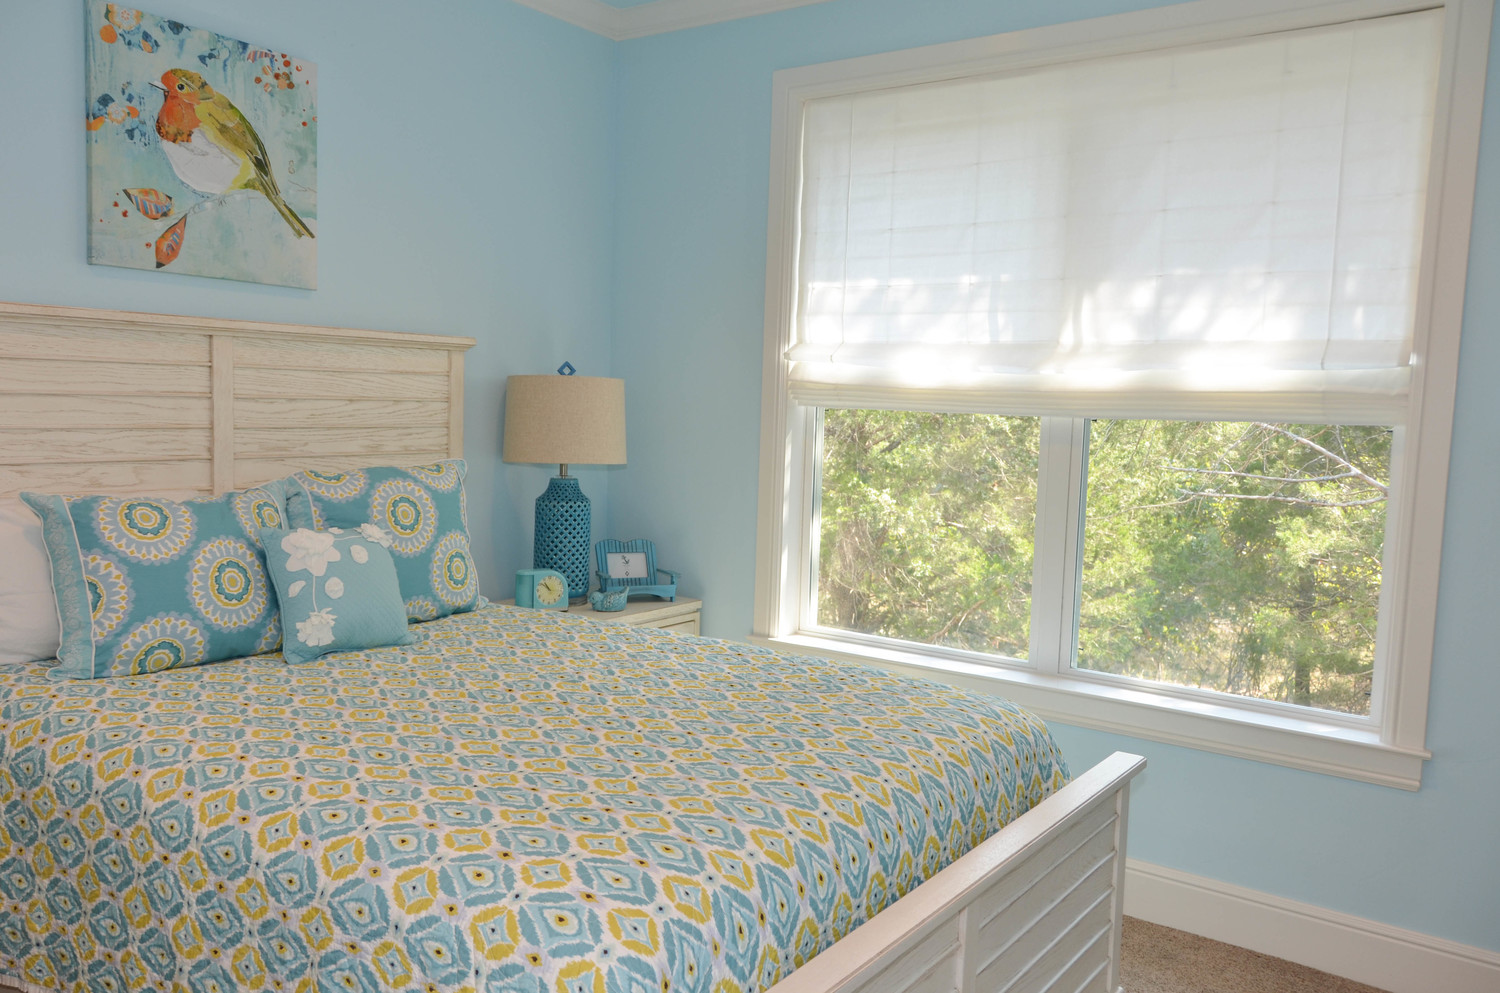 Roman shades in a light blue and yellow bedroom. White shiplap headboard.